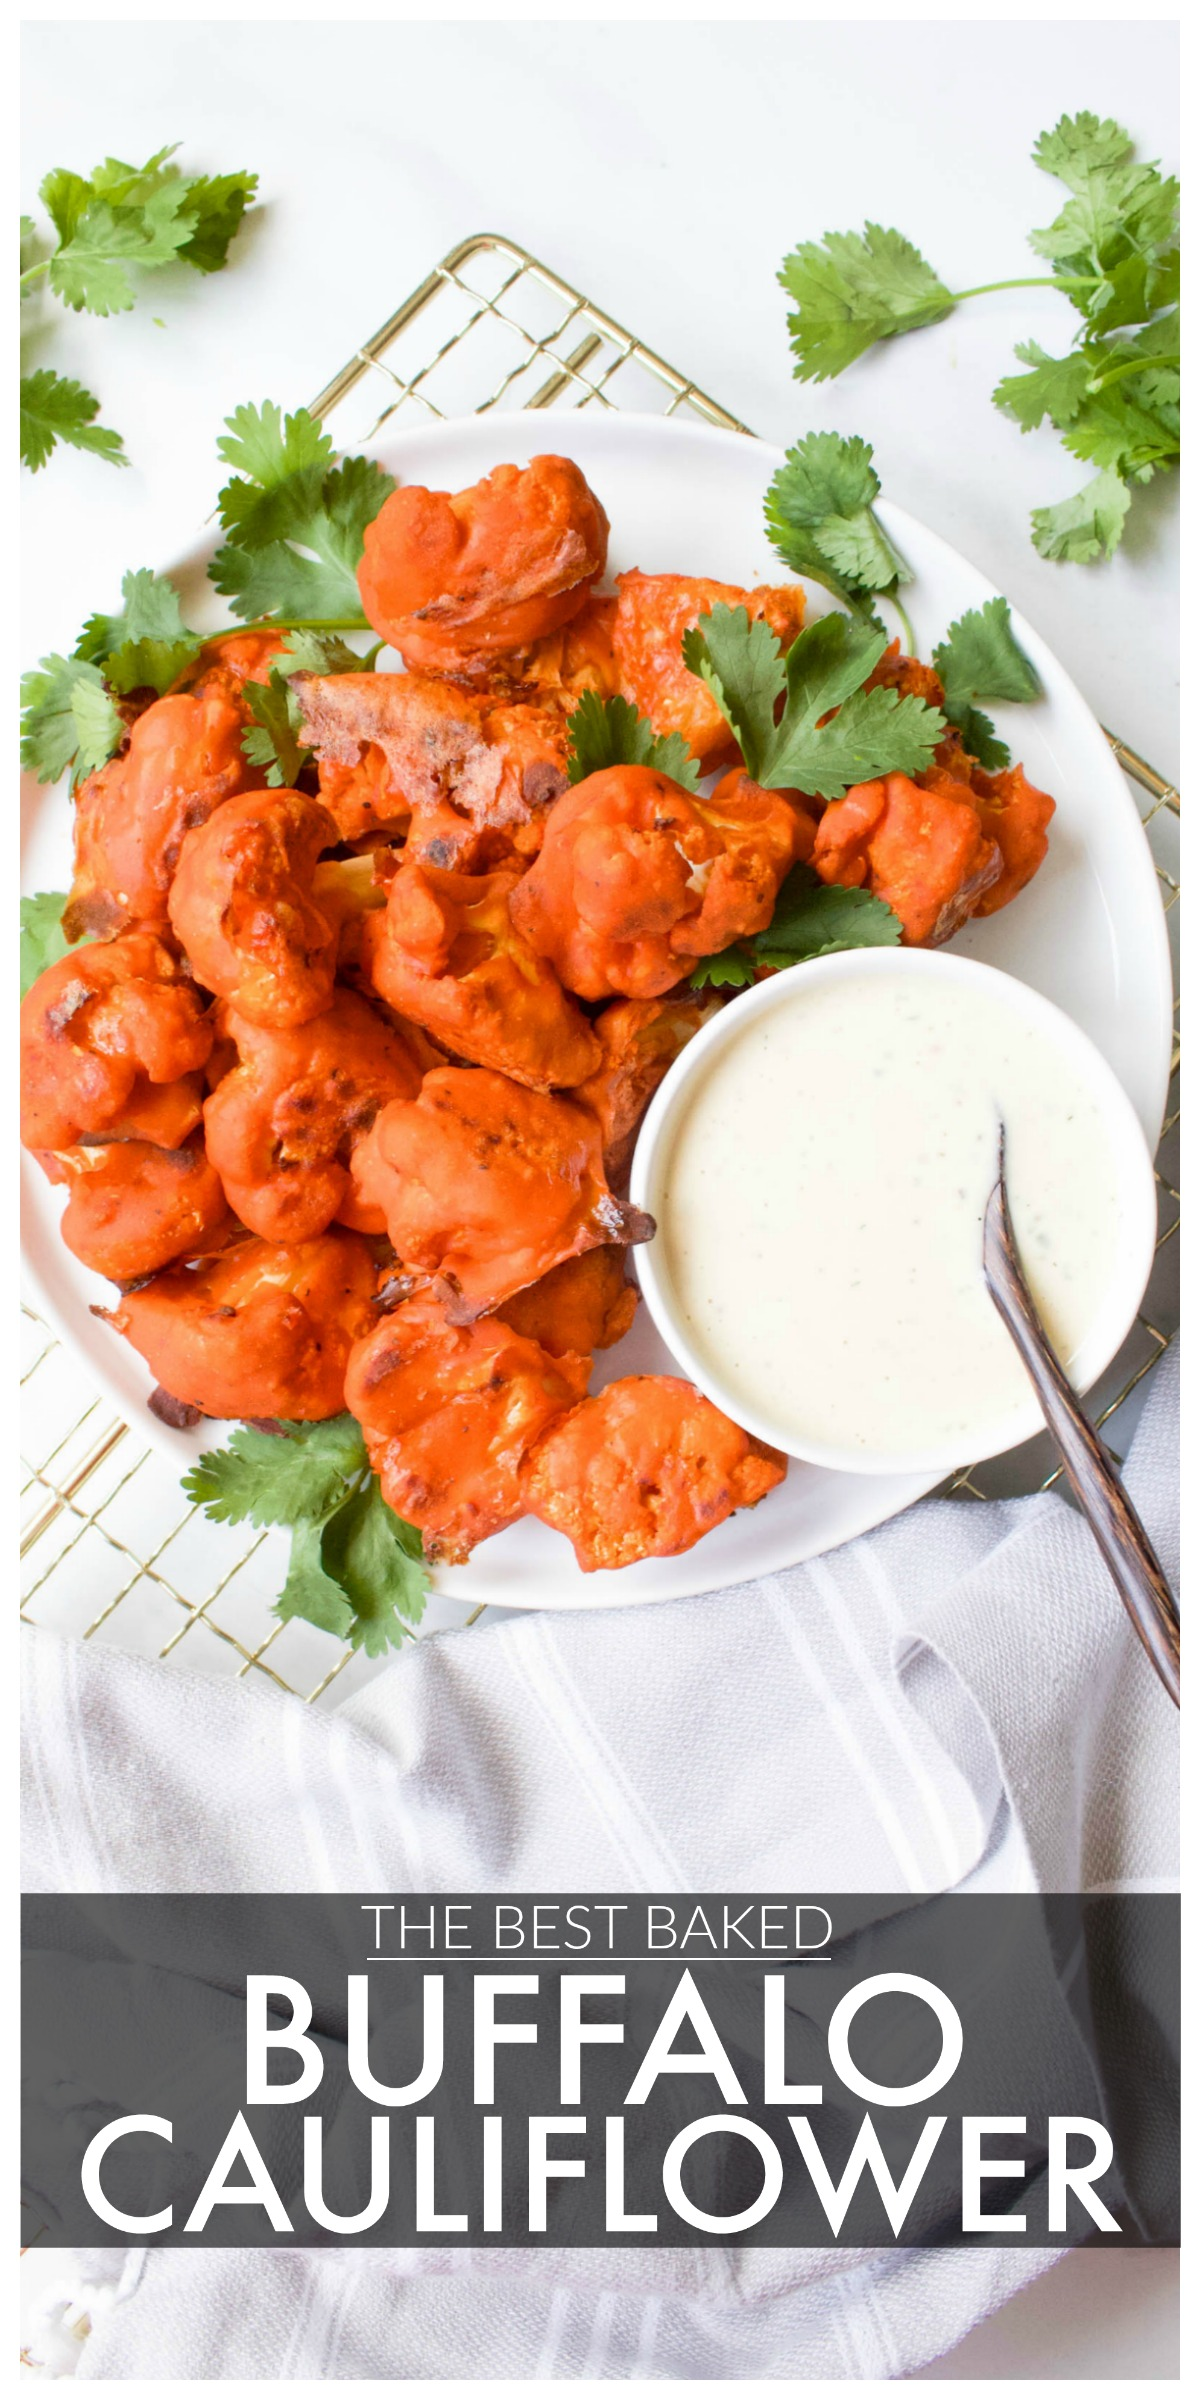 Flavored from the inside out and perfectly crispy, this really is The Best Baked Buffalo Cauliflower out there. Served with vegan ranch!   ThisSavoryVegan.com #thissavoryvegan #buffalocauliflower #vegan